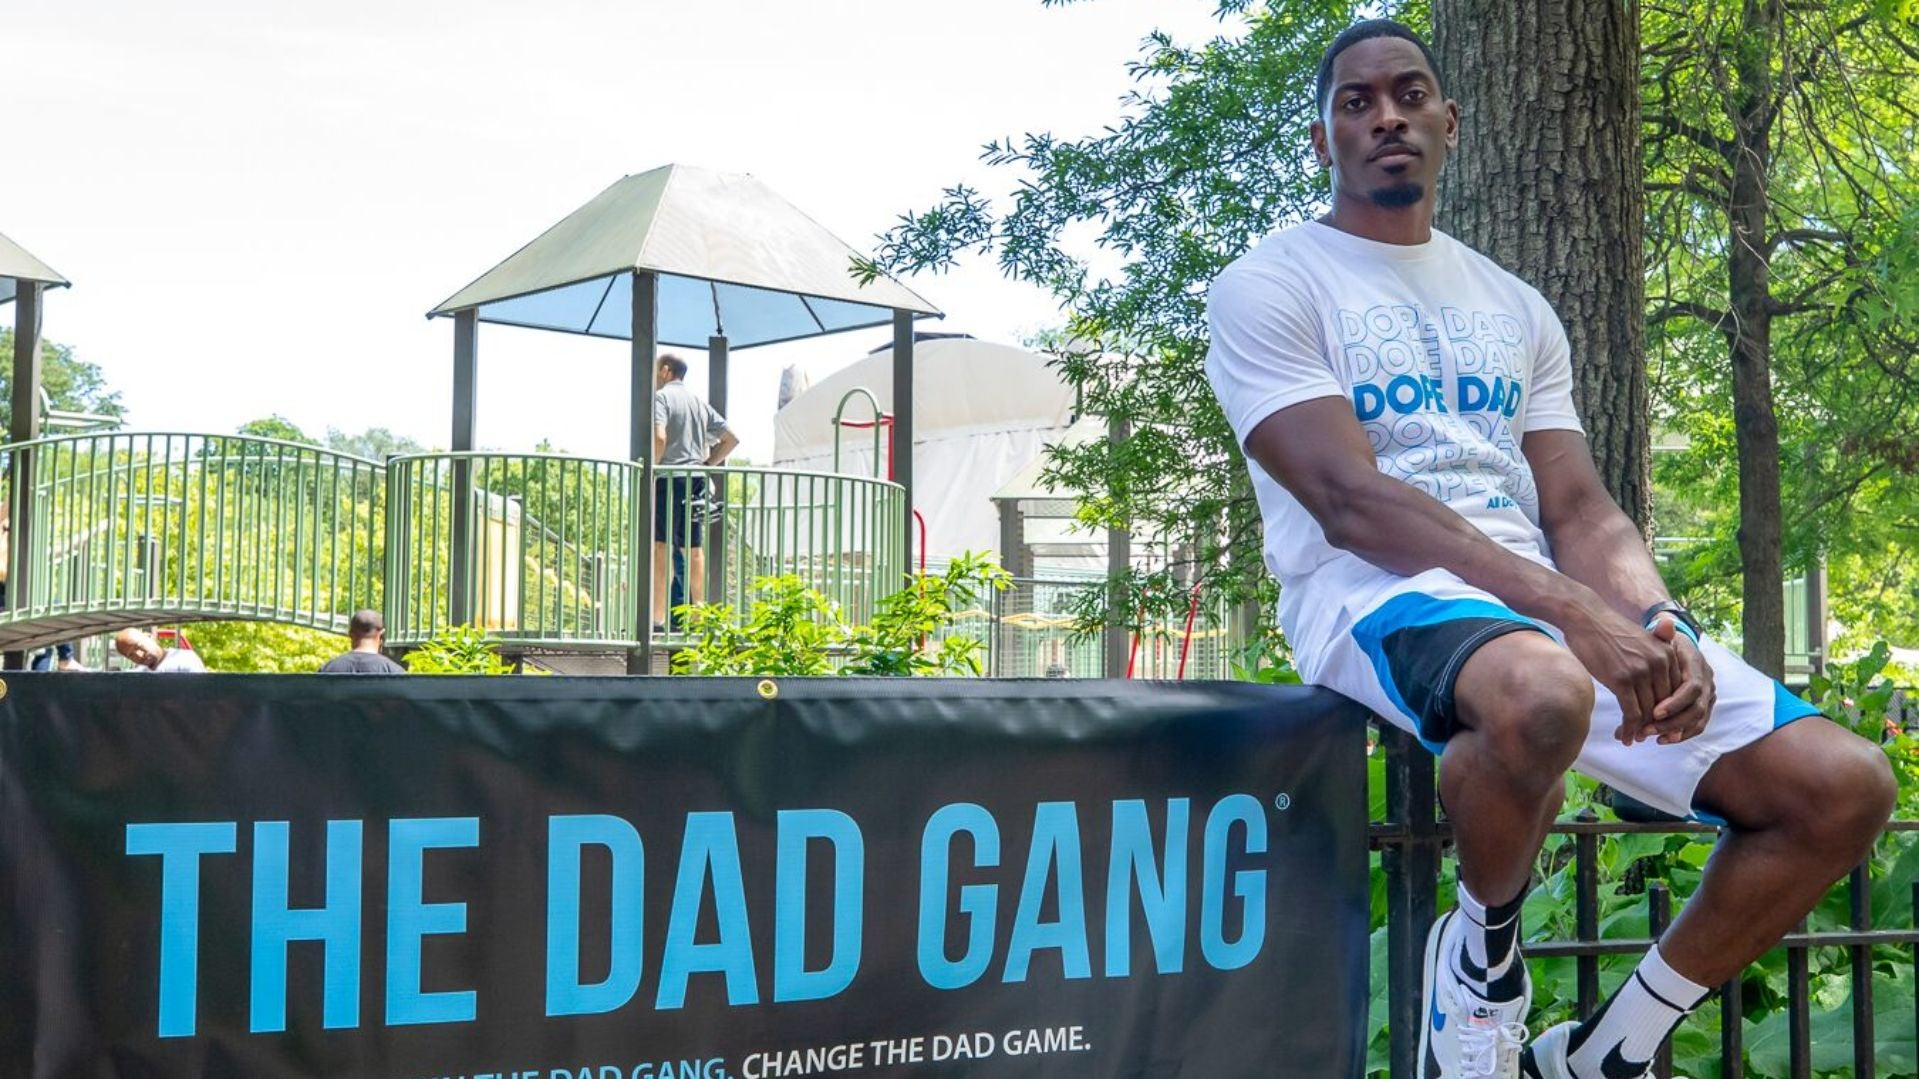 How This Black Man Is Changing The Narrative Of Fatherhood One Positive Image At A Time